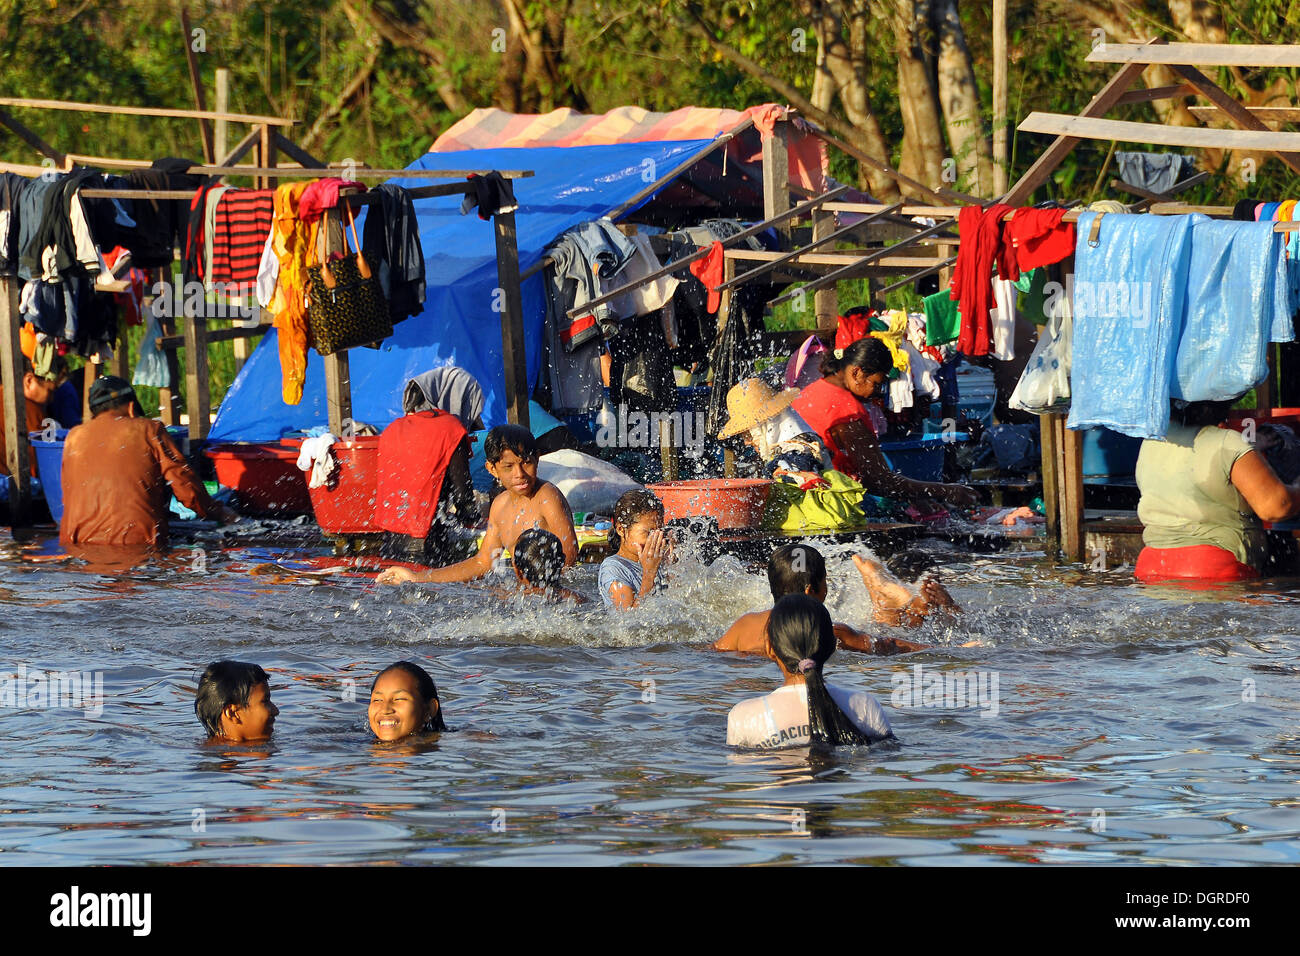 Children swimming in front of the laundry washing area in the river, Guayaramerín, Amazonia, Vaca Díez Province, Bolivia - Stock Image